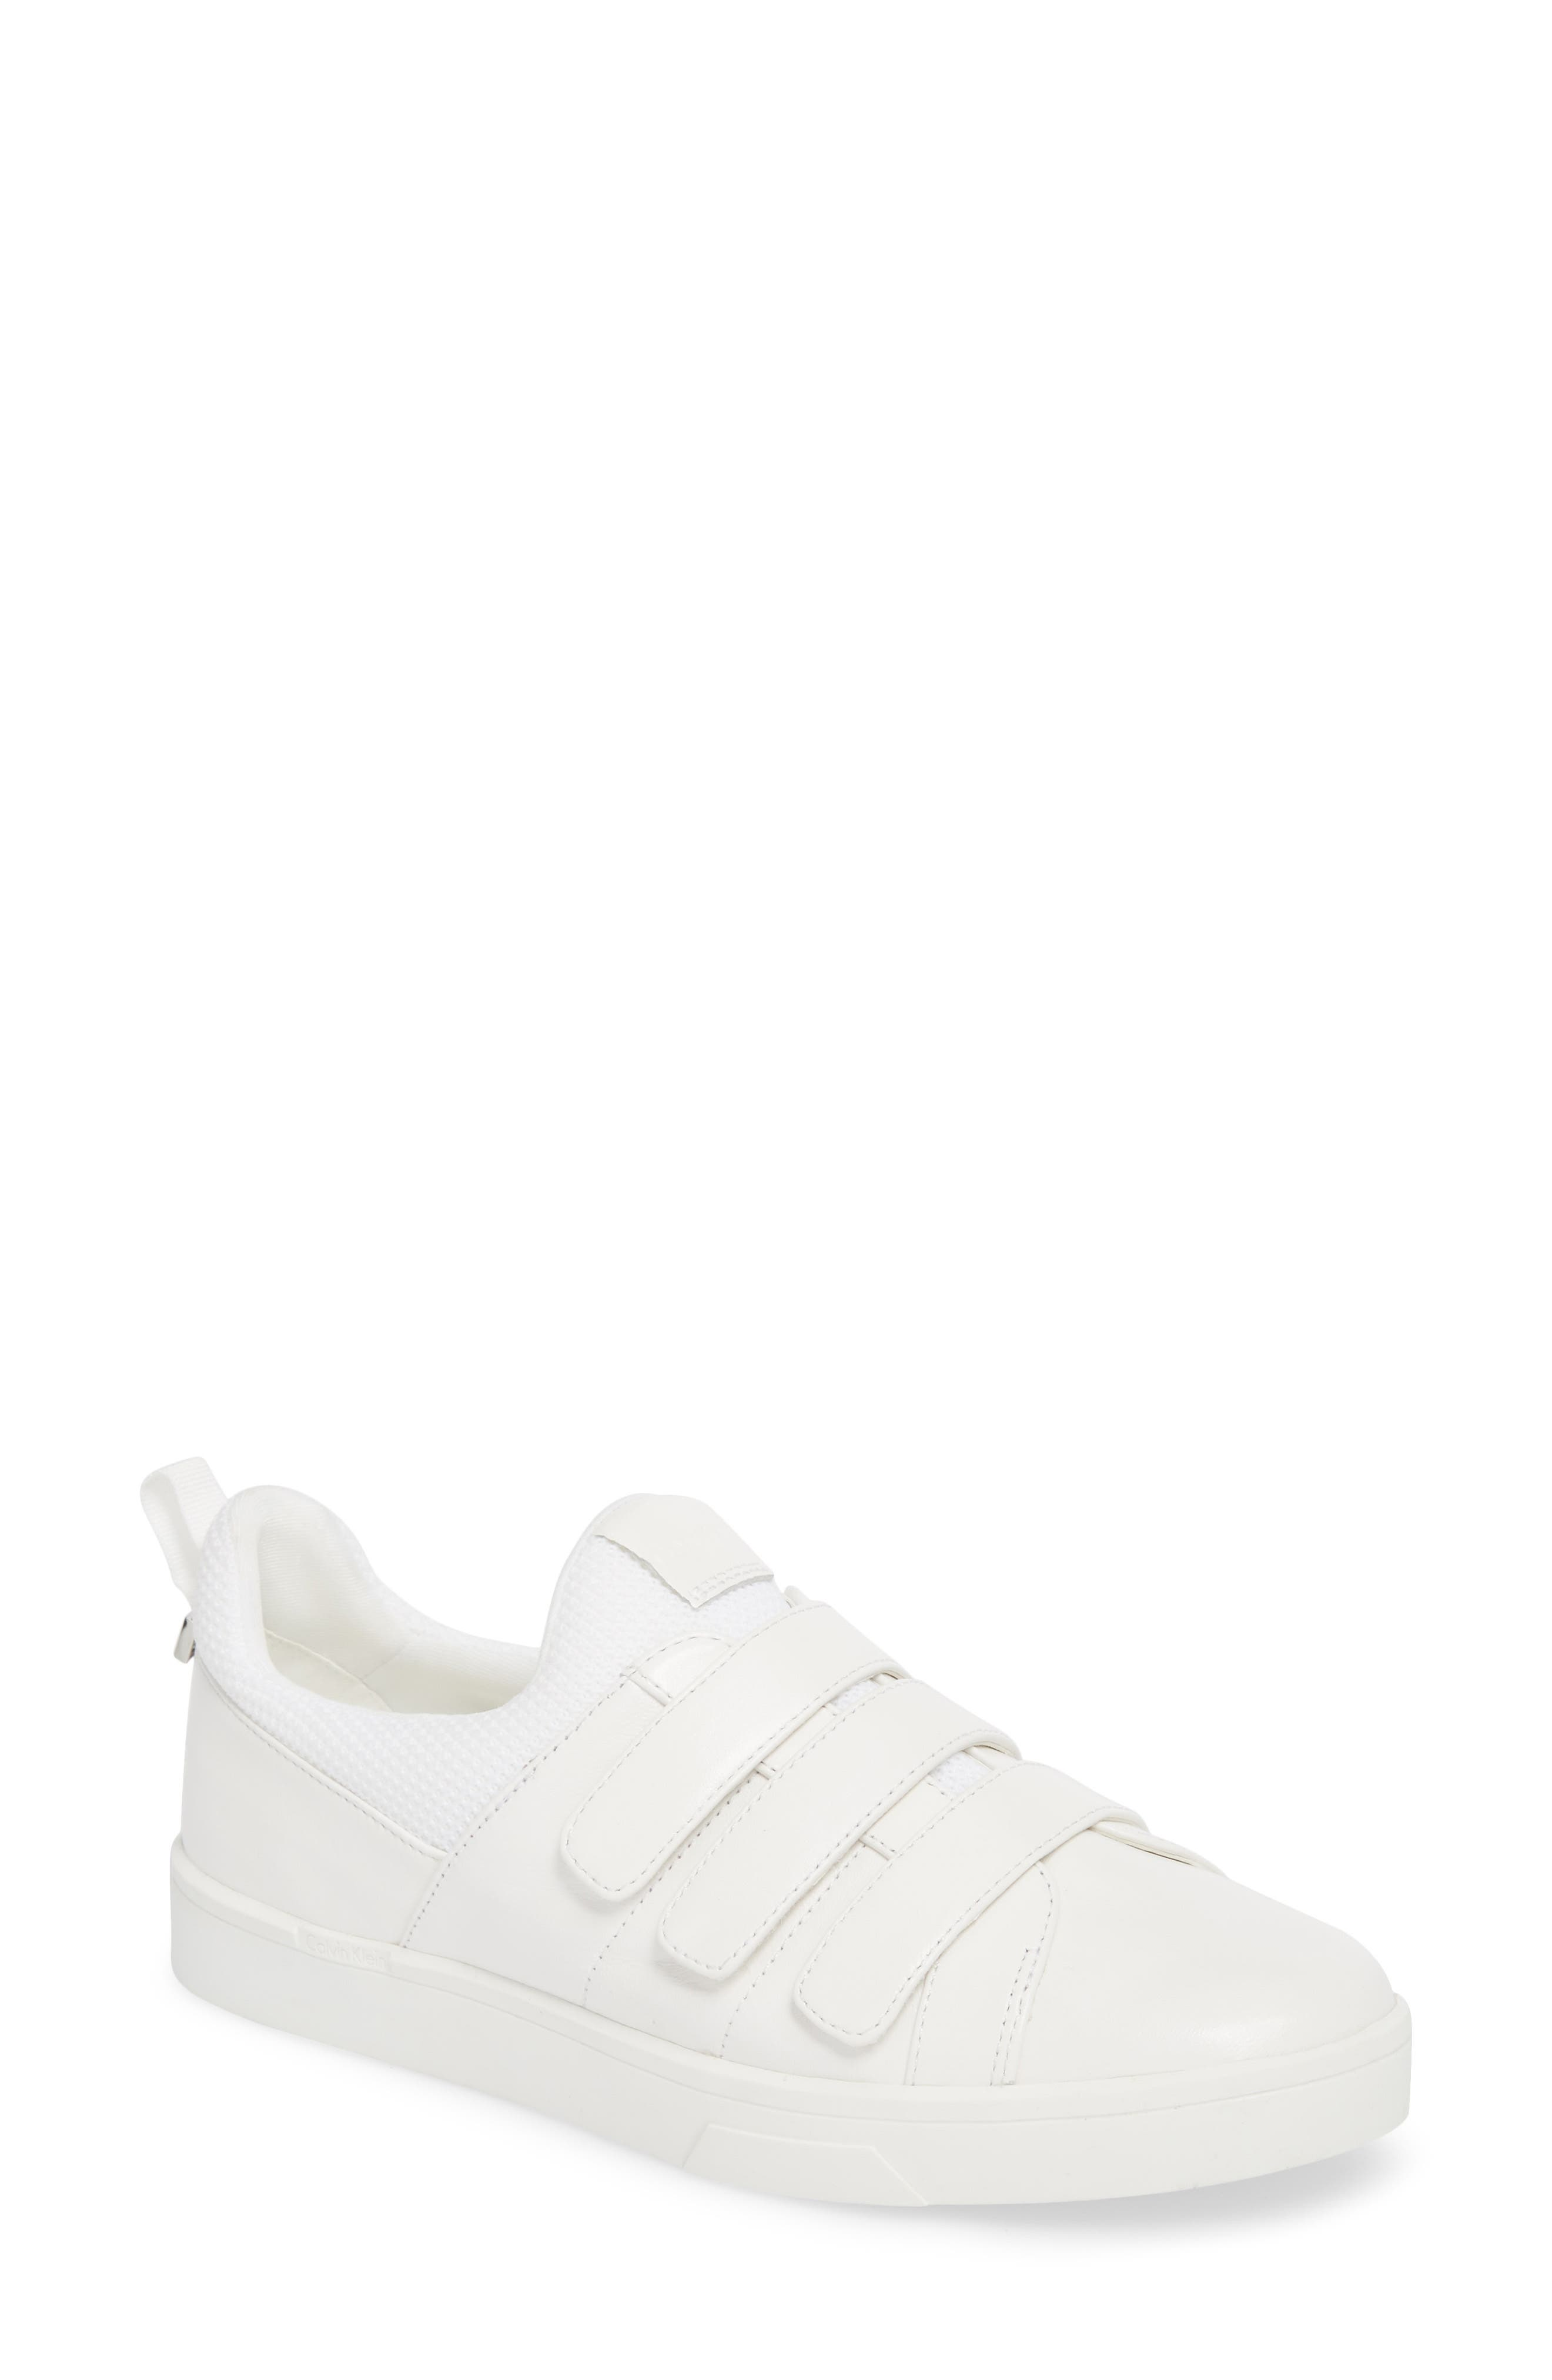 Irah Sneaker,                             Main thumbnail 1, color,                             WHITE LEATHER